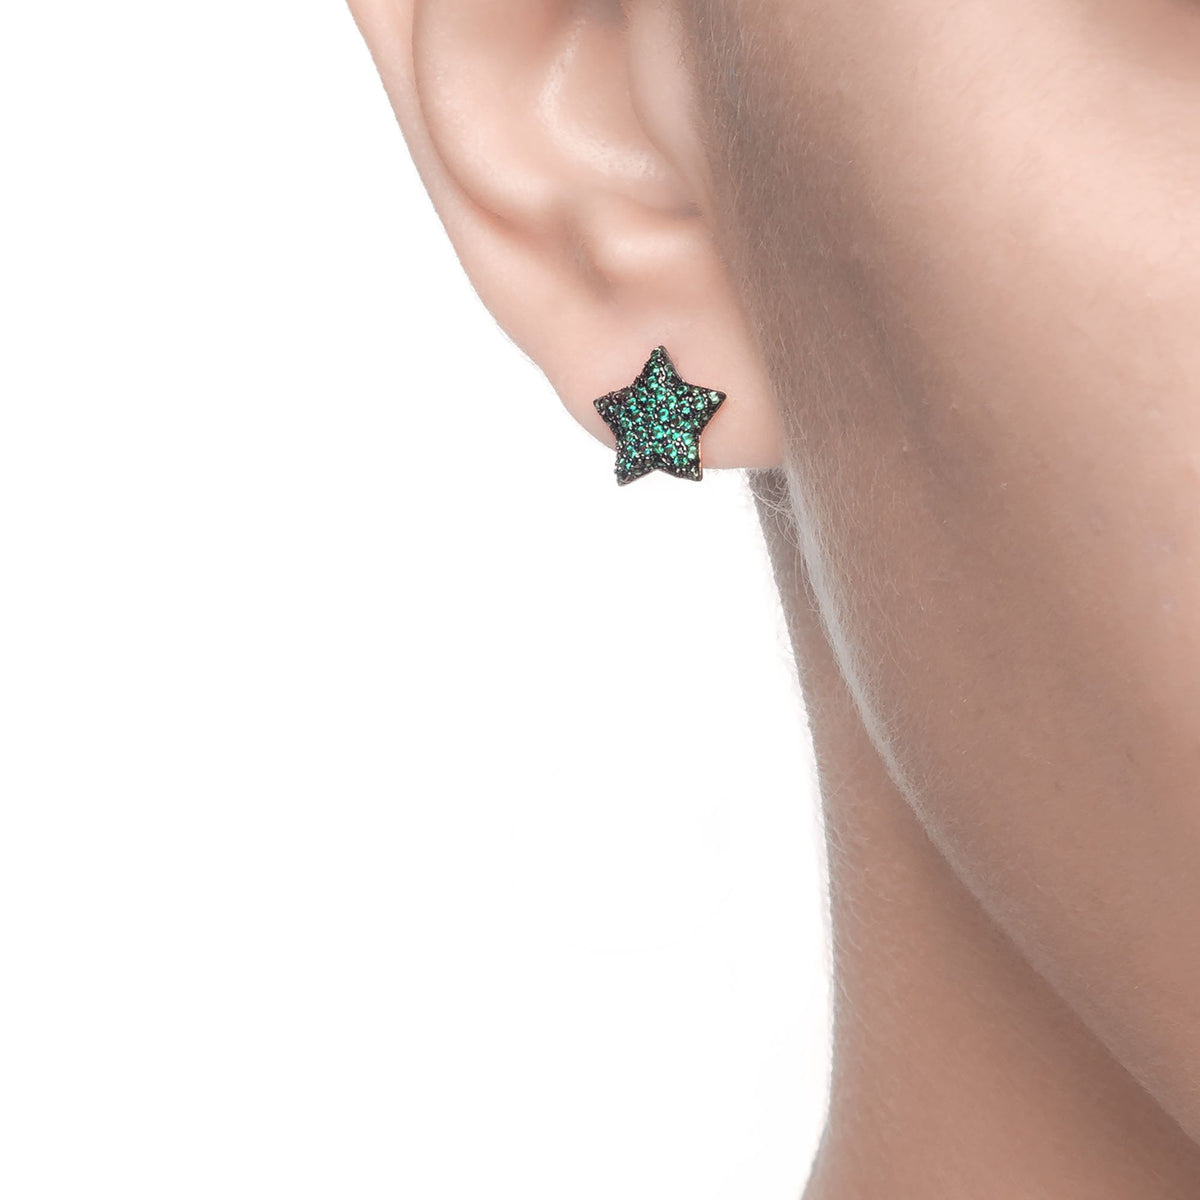 Ferentina | Marshmallow Earrings | 925 Silver | Green CZ | Black Rhodium & 18K Gold Plated